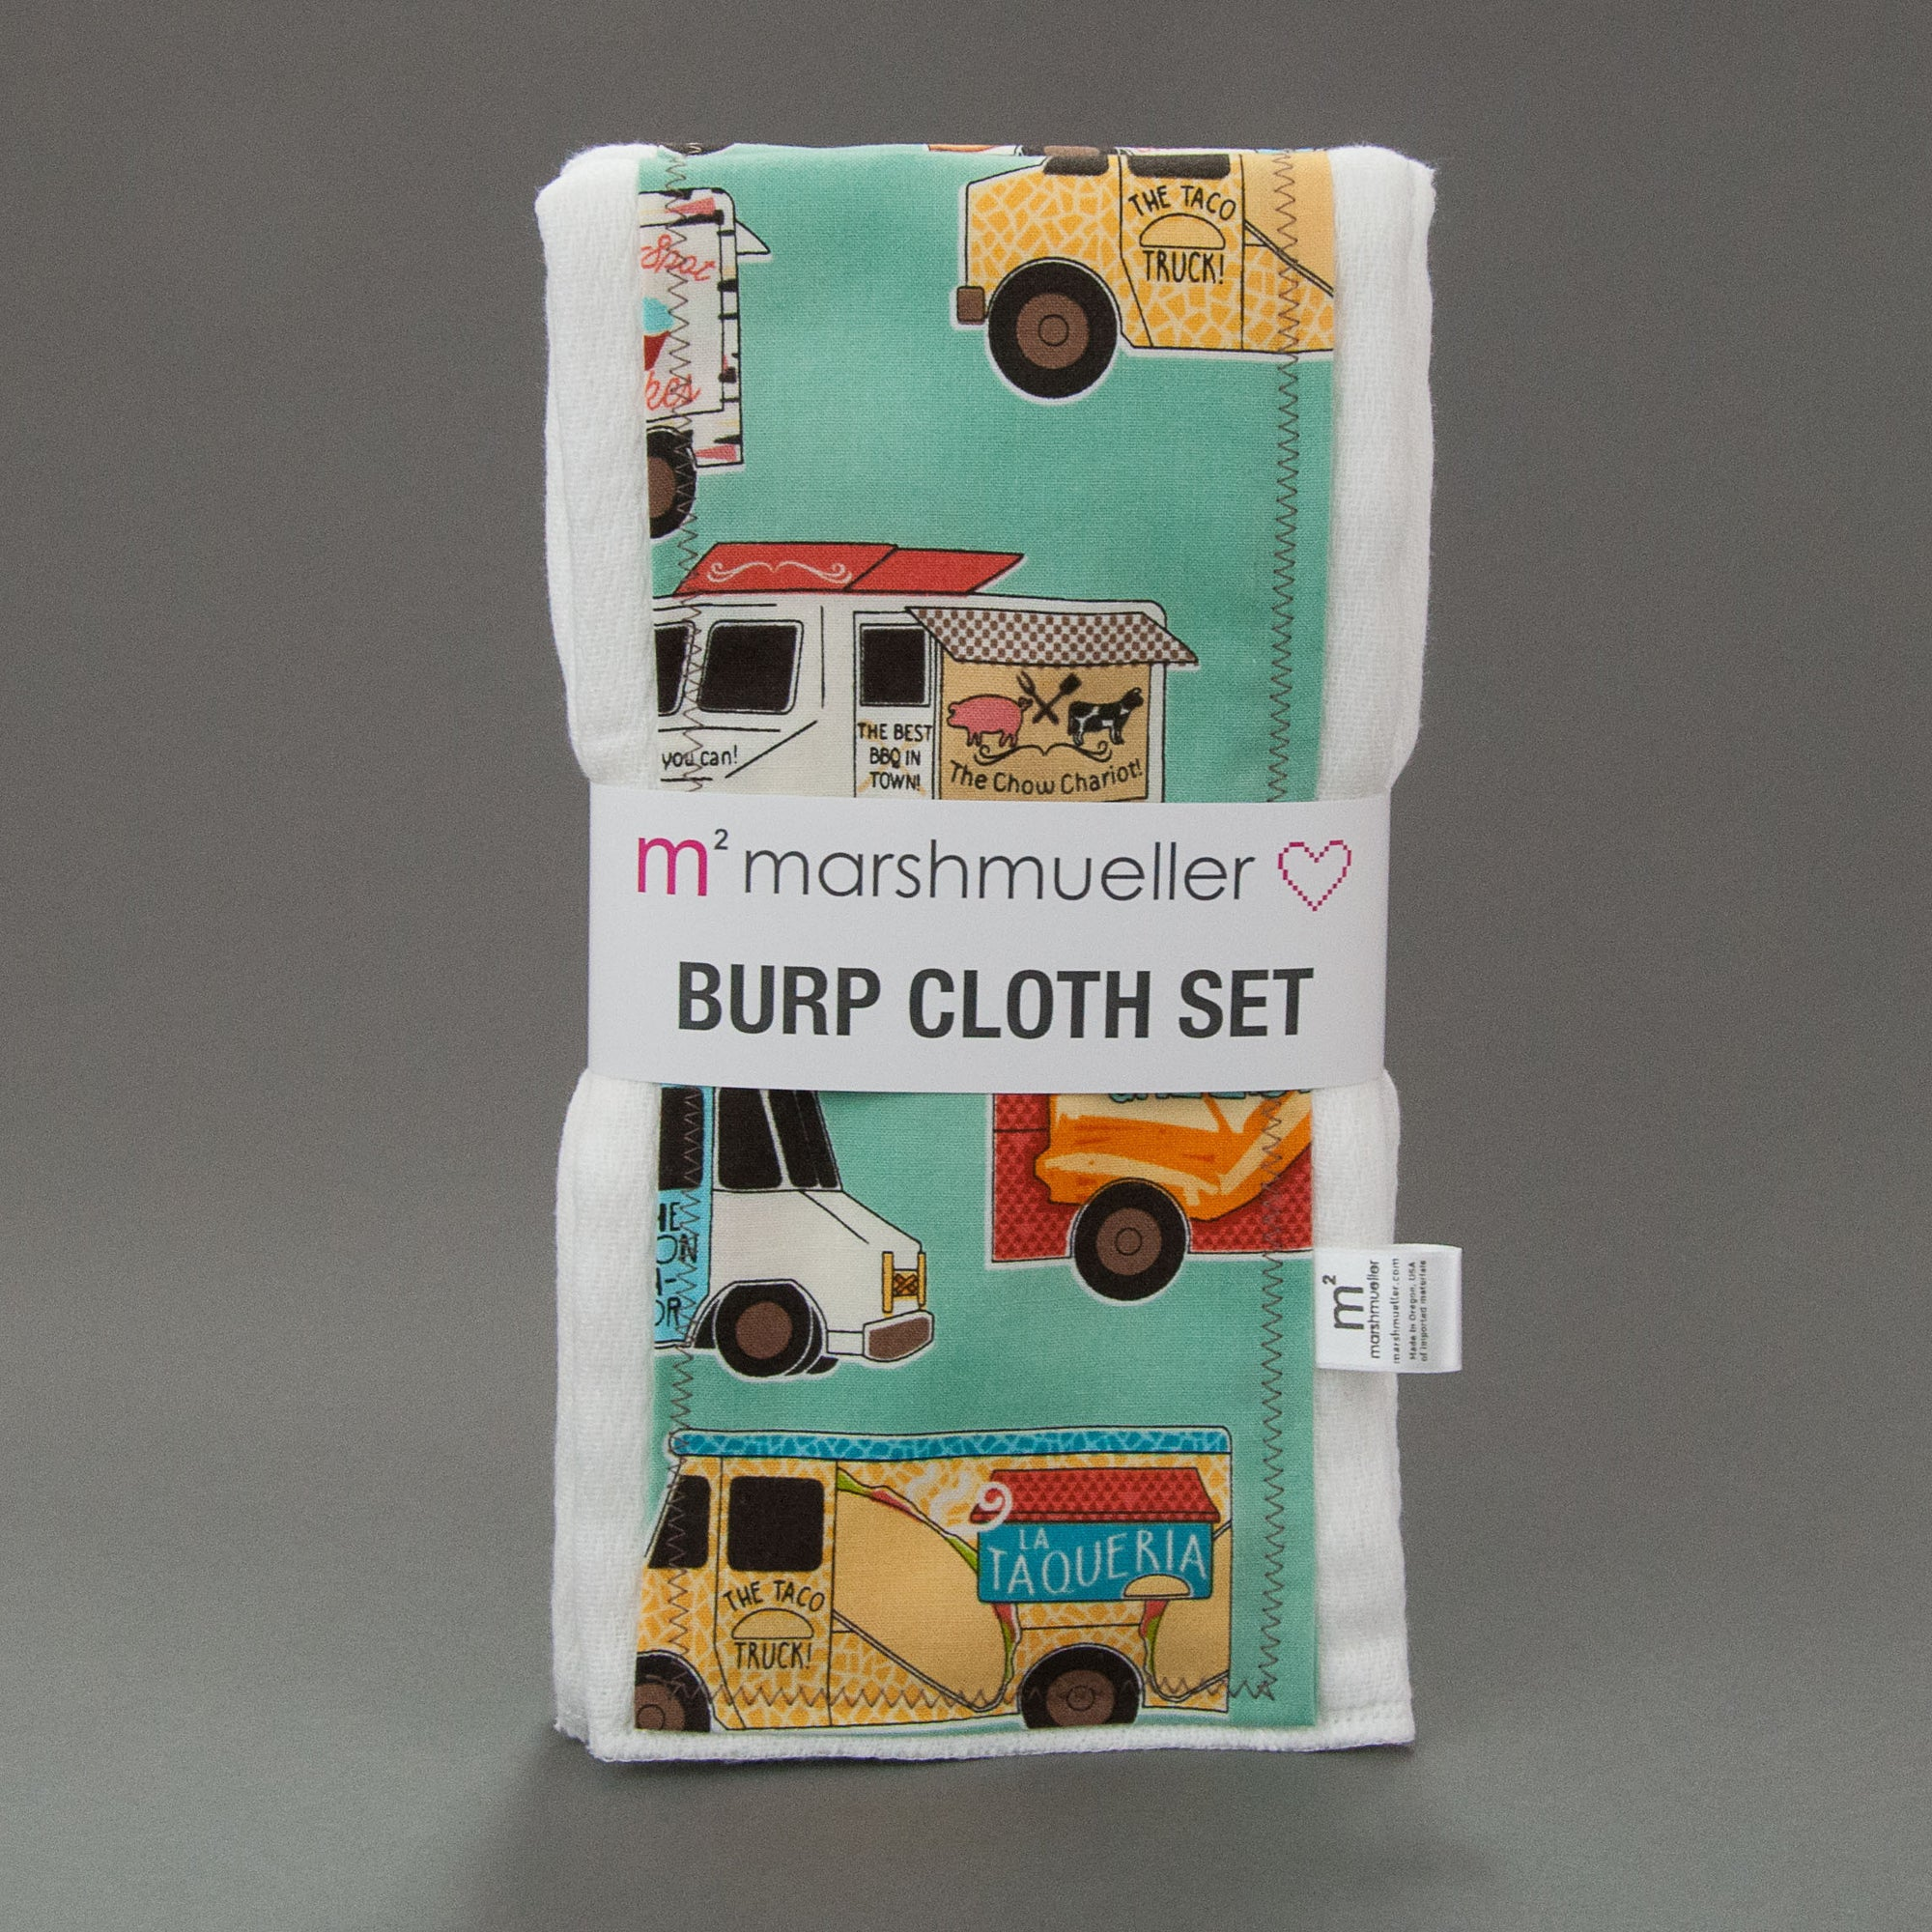 Food Trucks Burp Cloth Set - MarshMueller